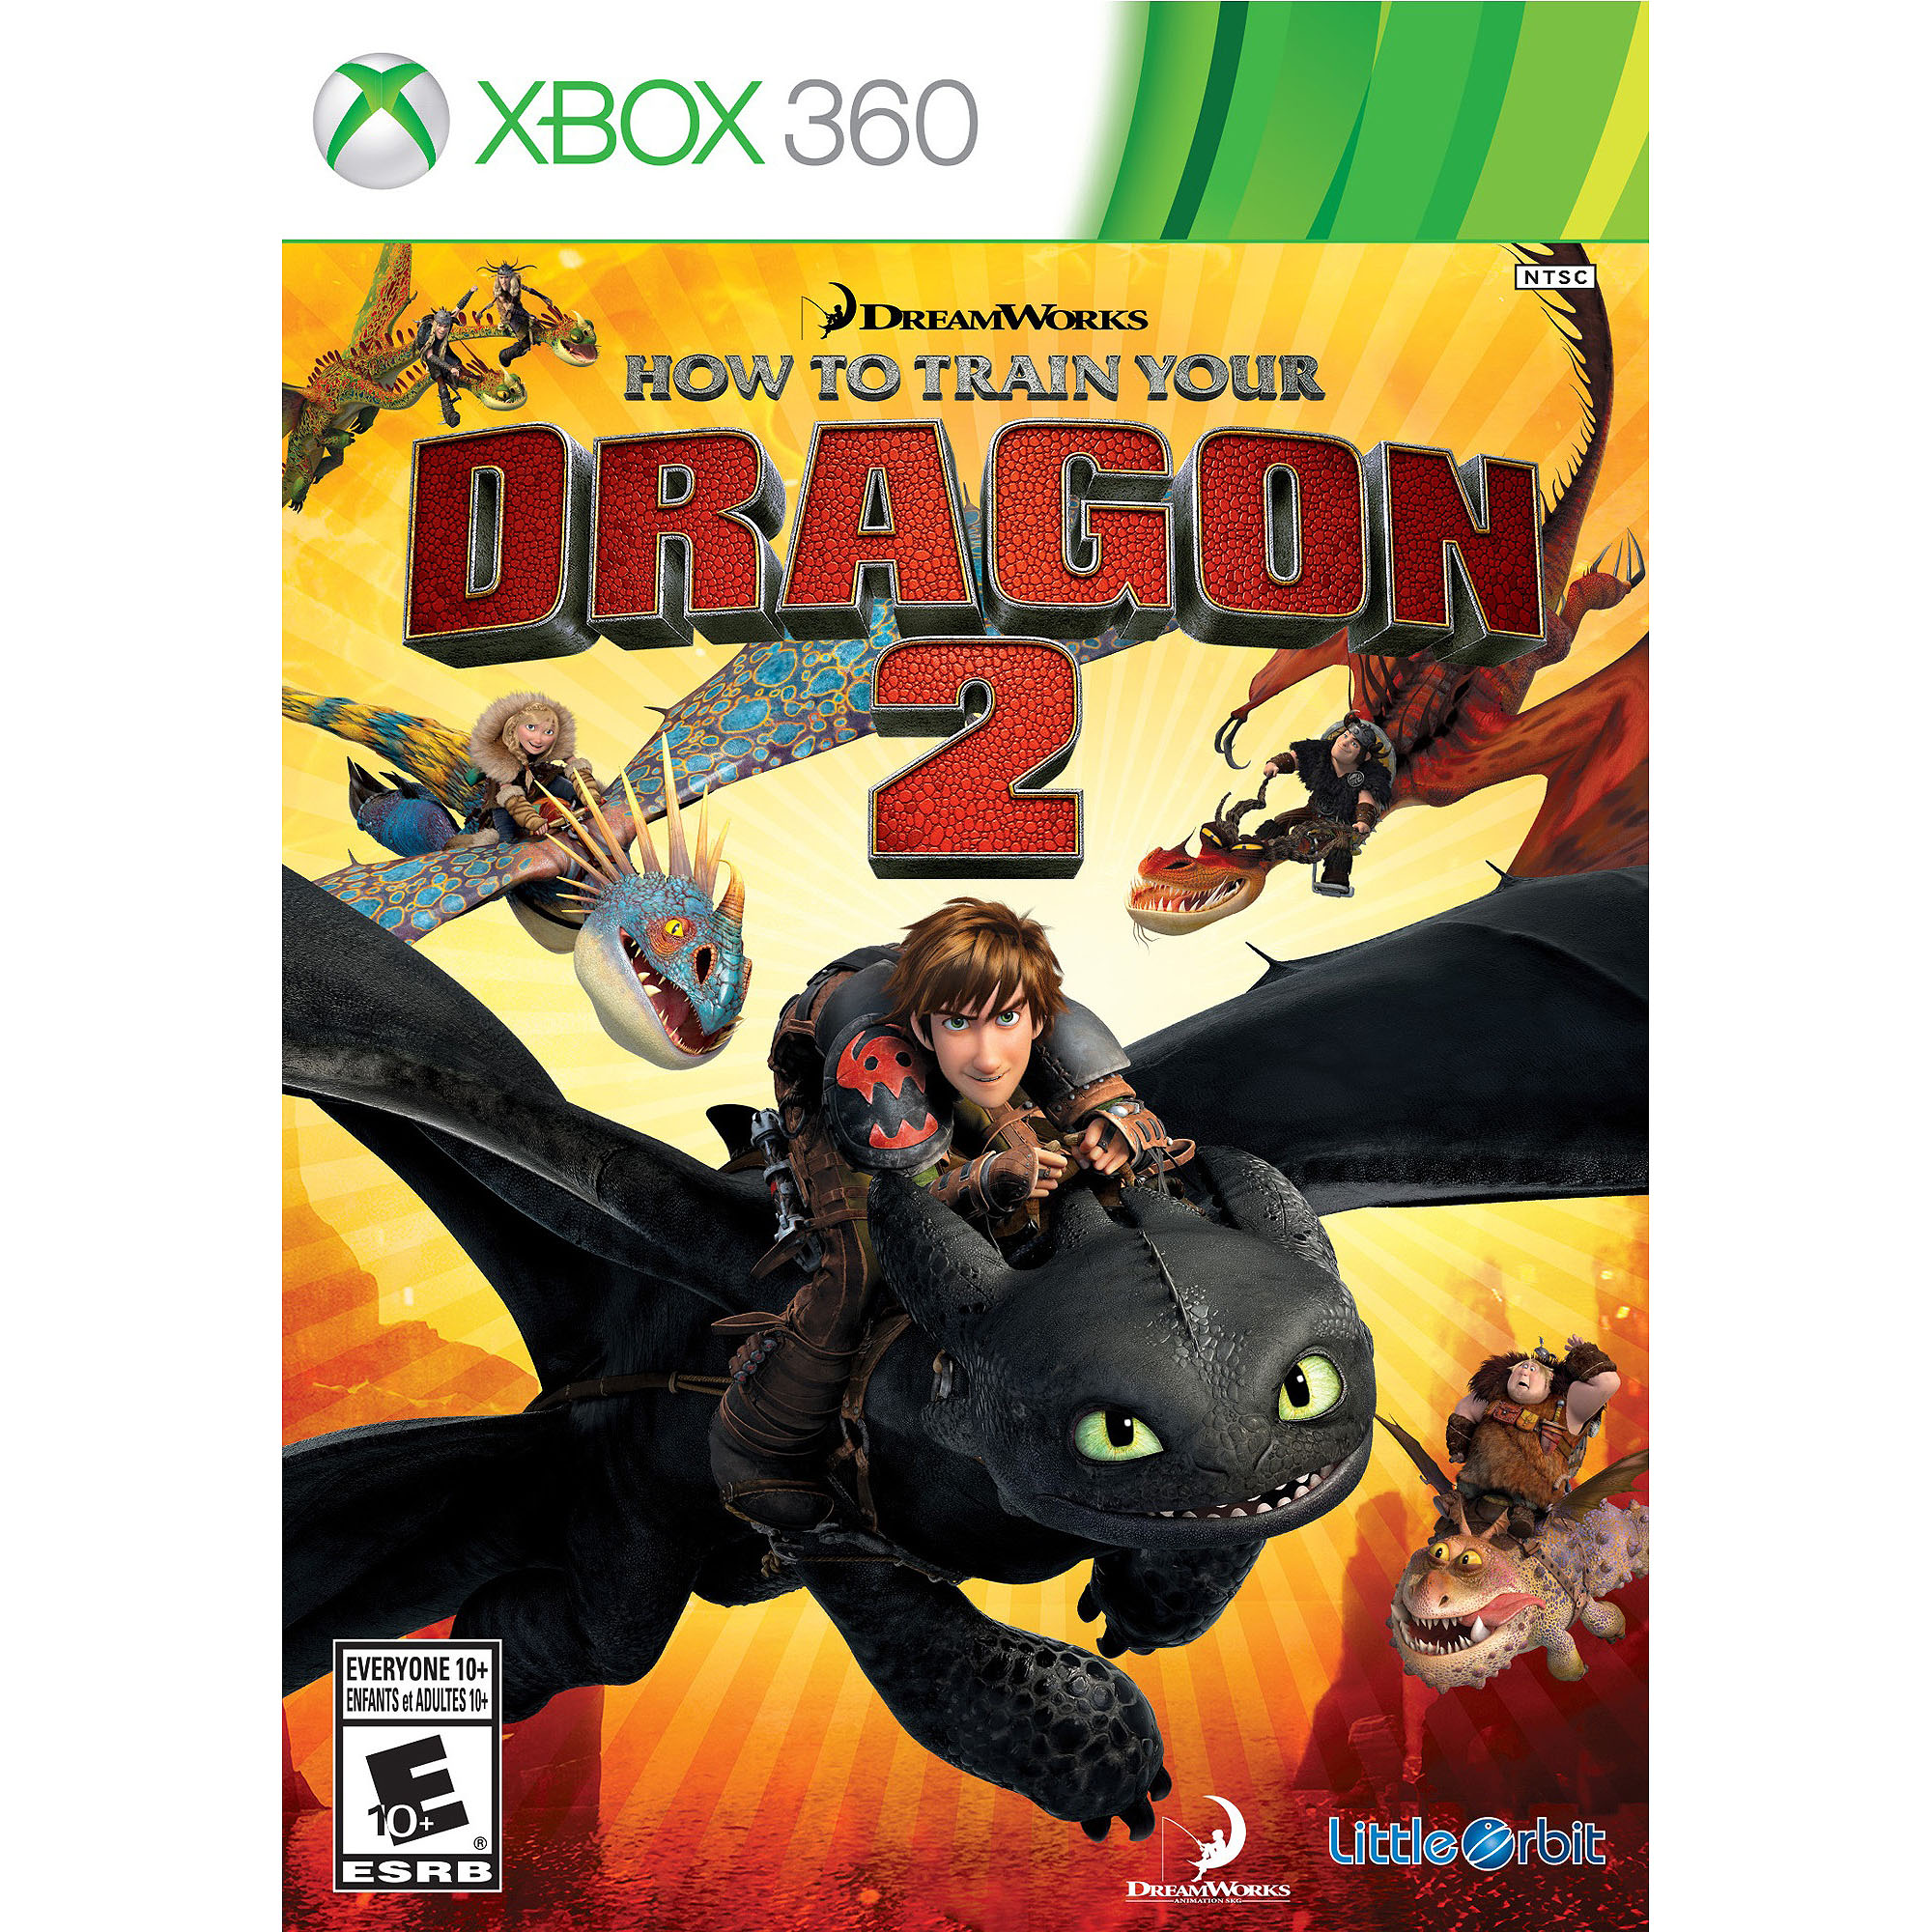 How To Train Your Dragon 2 (Xbox 360) - Pre-Owned